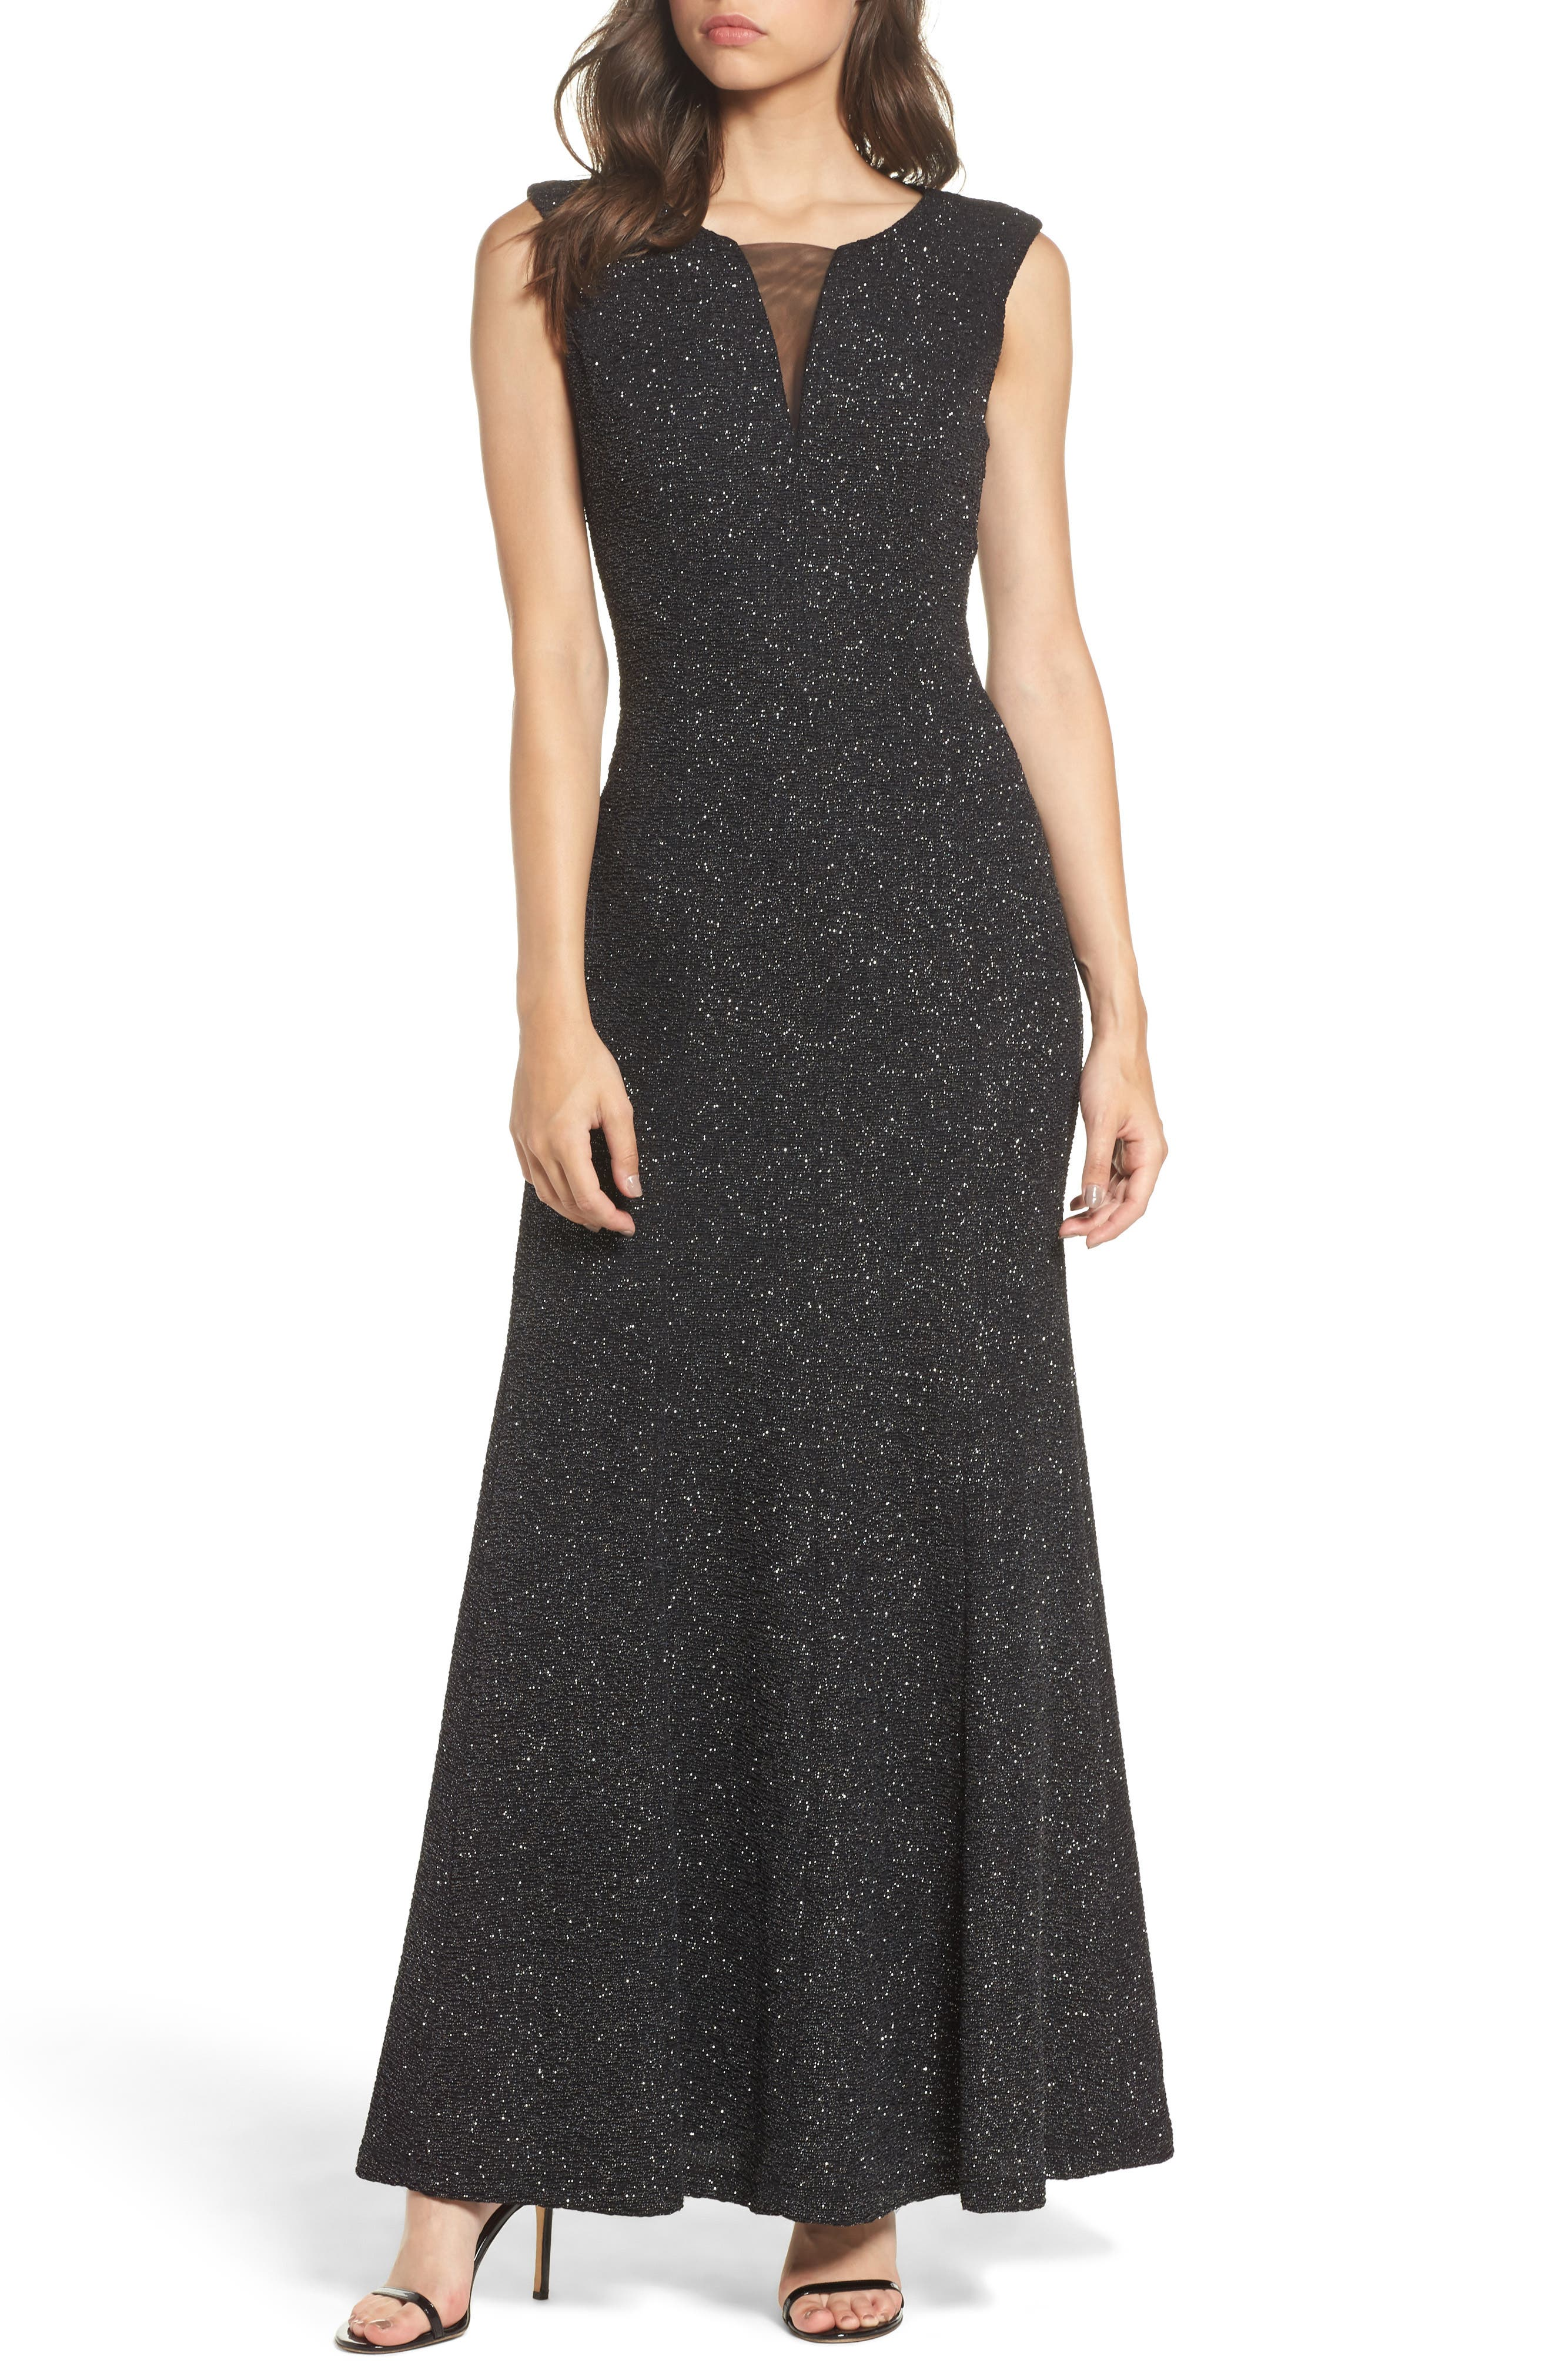 Glitter Knit Gown,                         Main,                         color, Black/ Silver